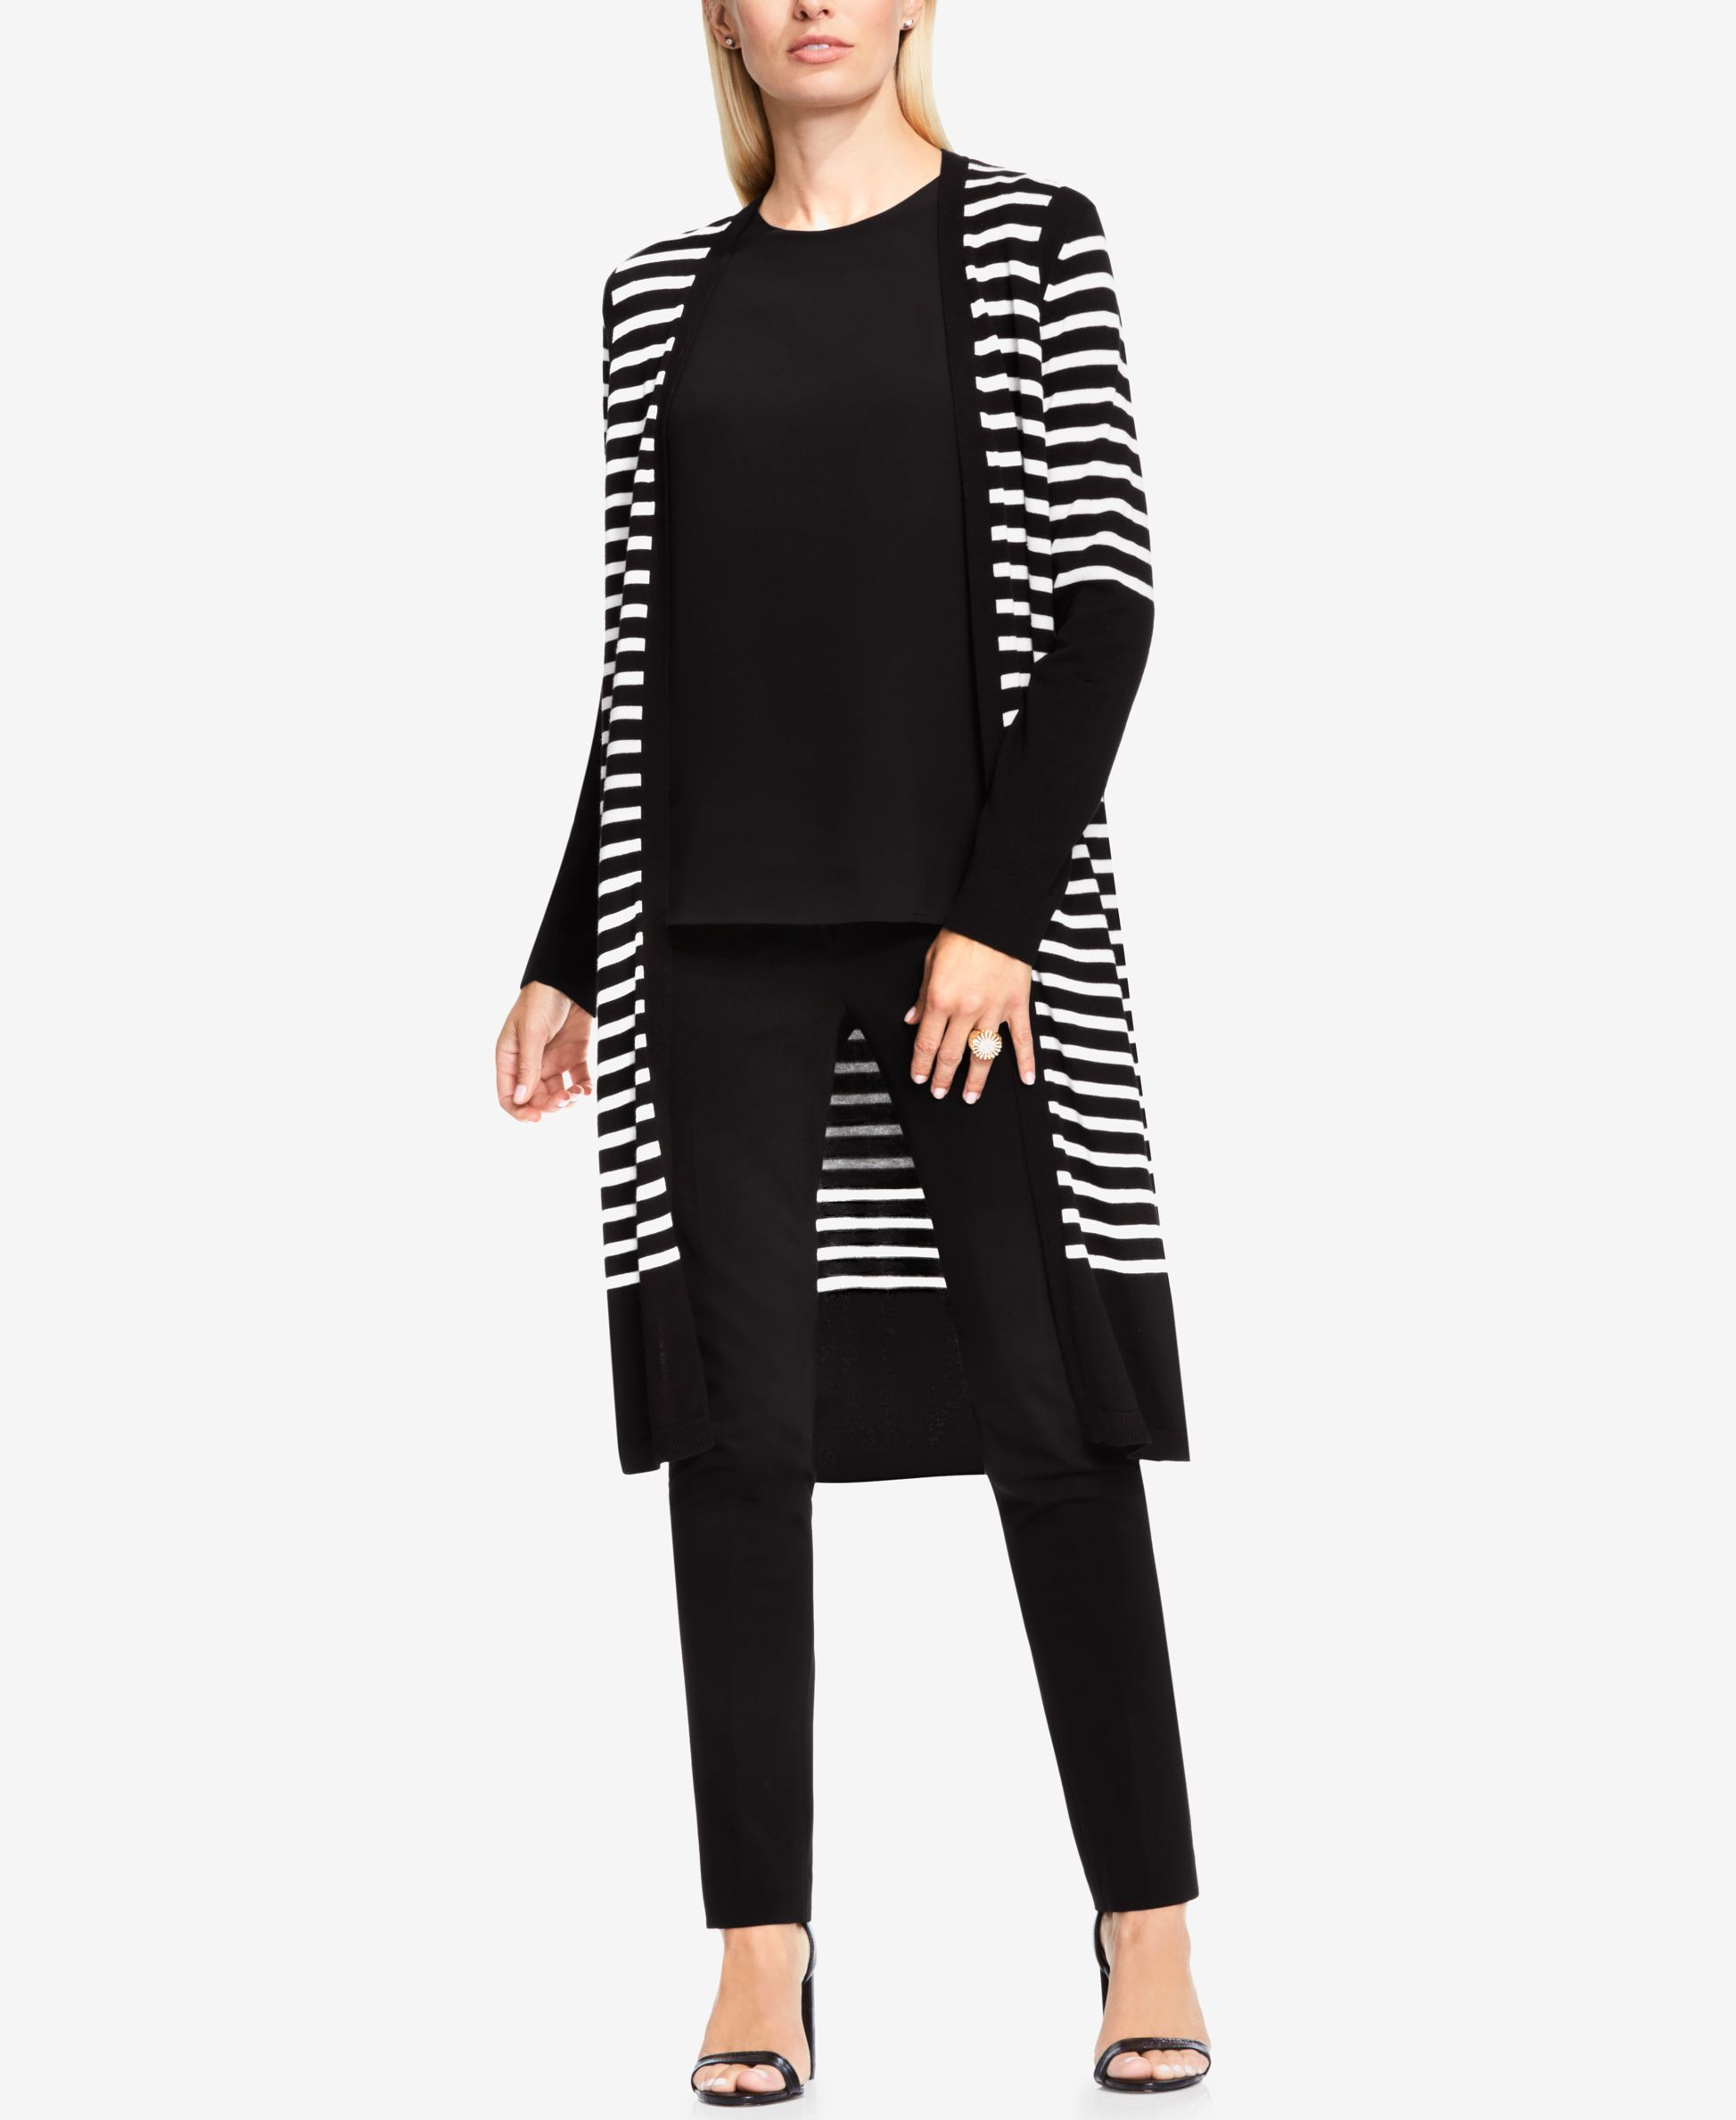 Vince Camuto Striped Open-Front Cardigan | Shops, Products and ...